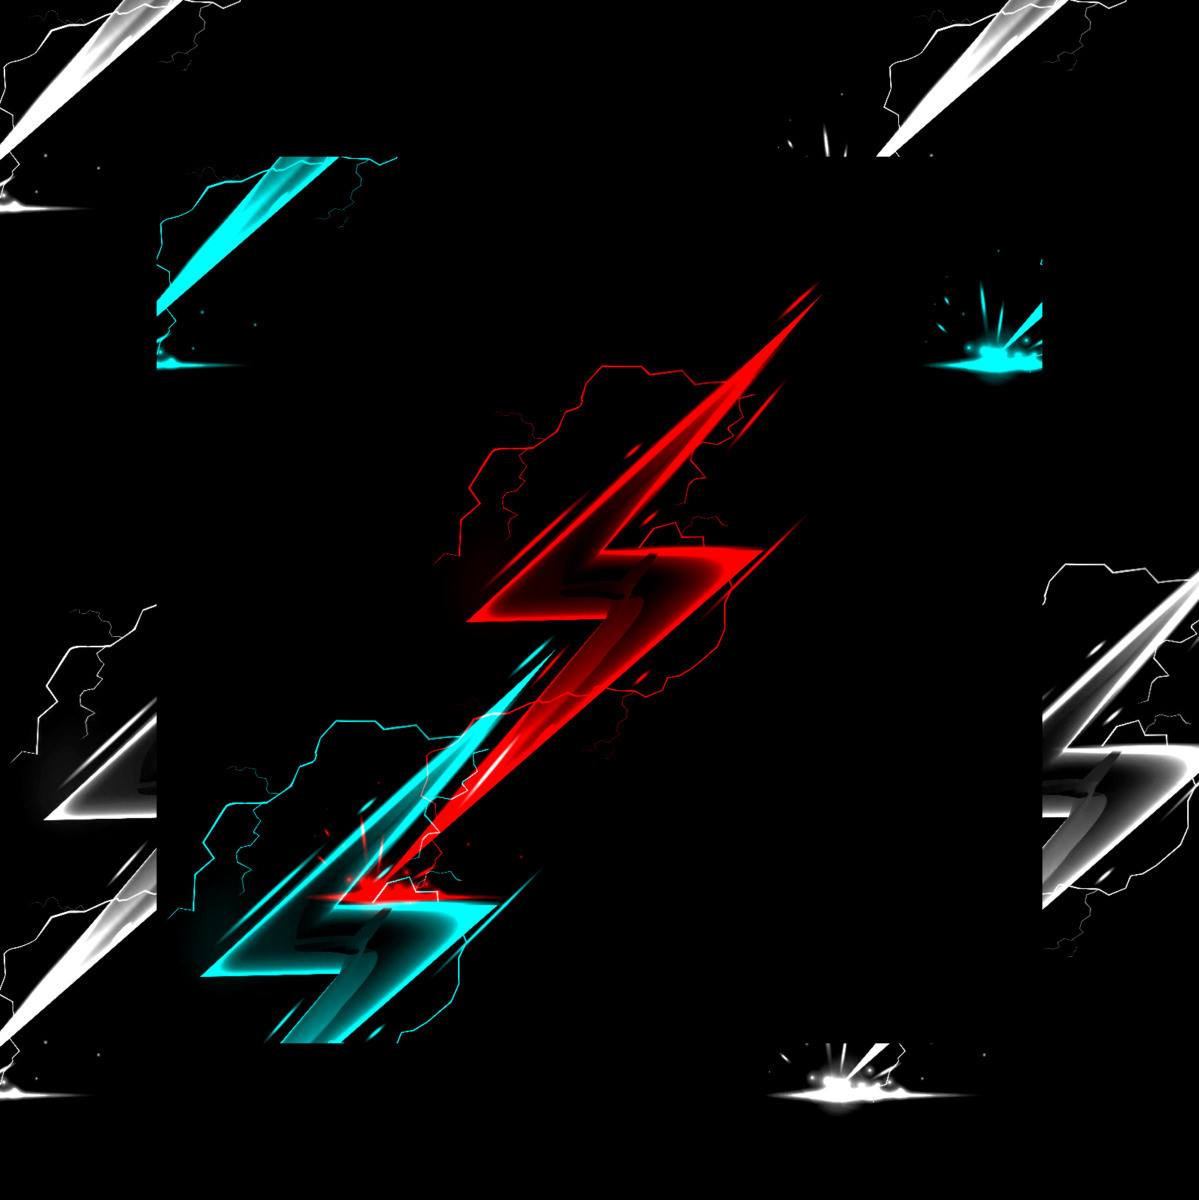 Lightning Bolt Illustration of sparkling lightning bolt with electric effect, Copyright by Vectomart at Dreamstime.com-ID25648715, effects created by Tuxpi